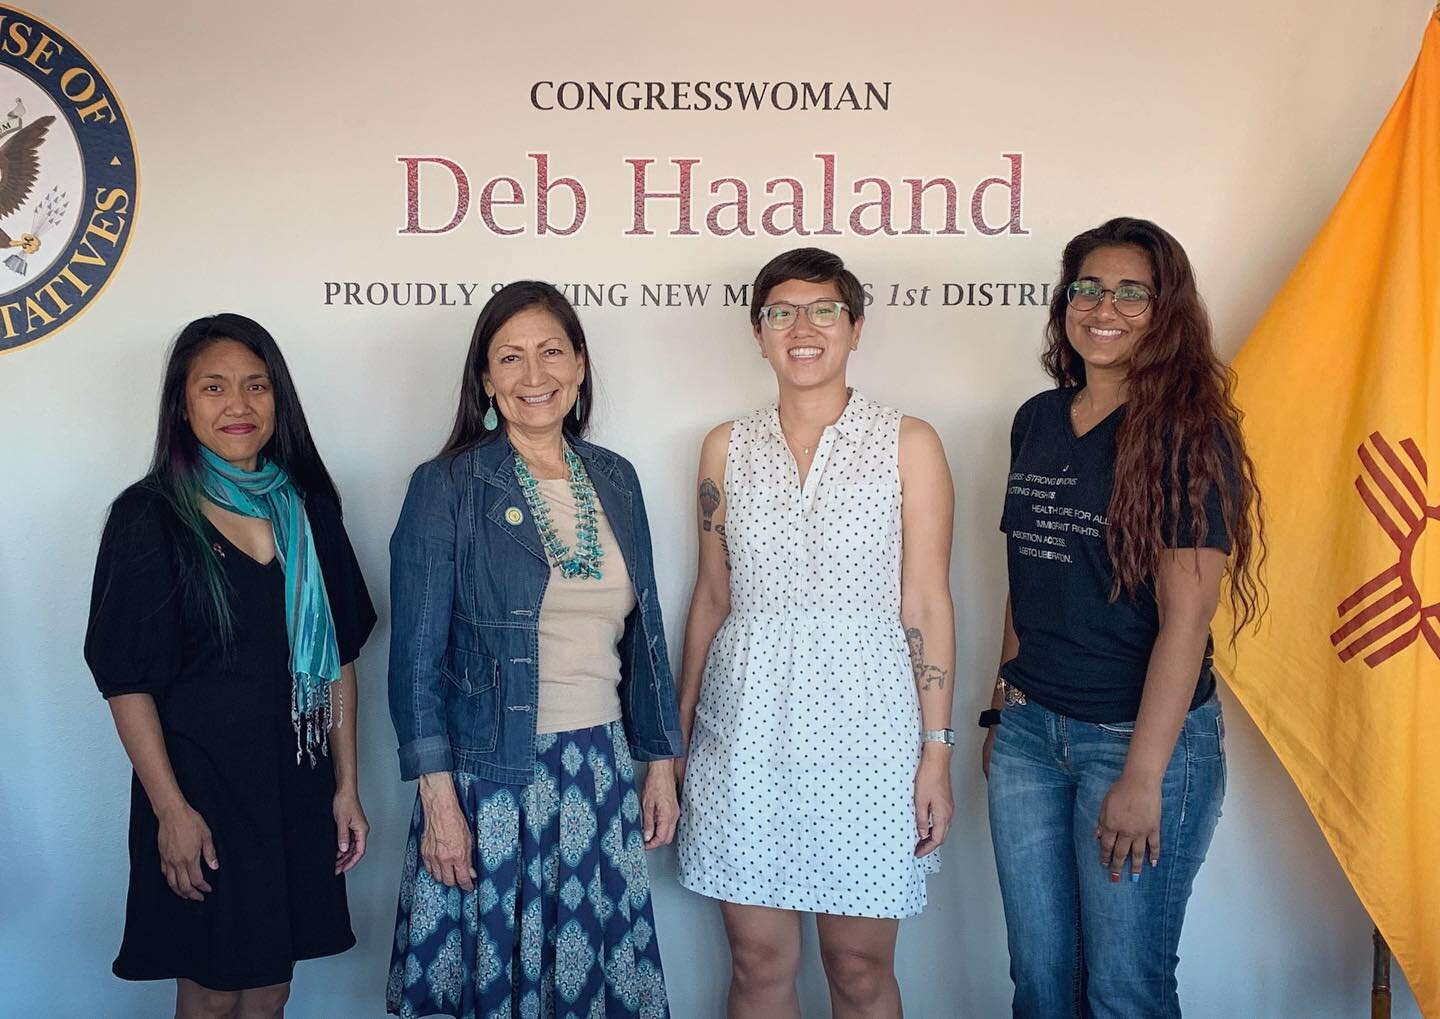 New Mexico chapter leaders meet with Congresswoman Deb Haaland.